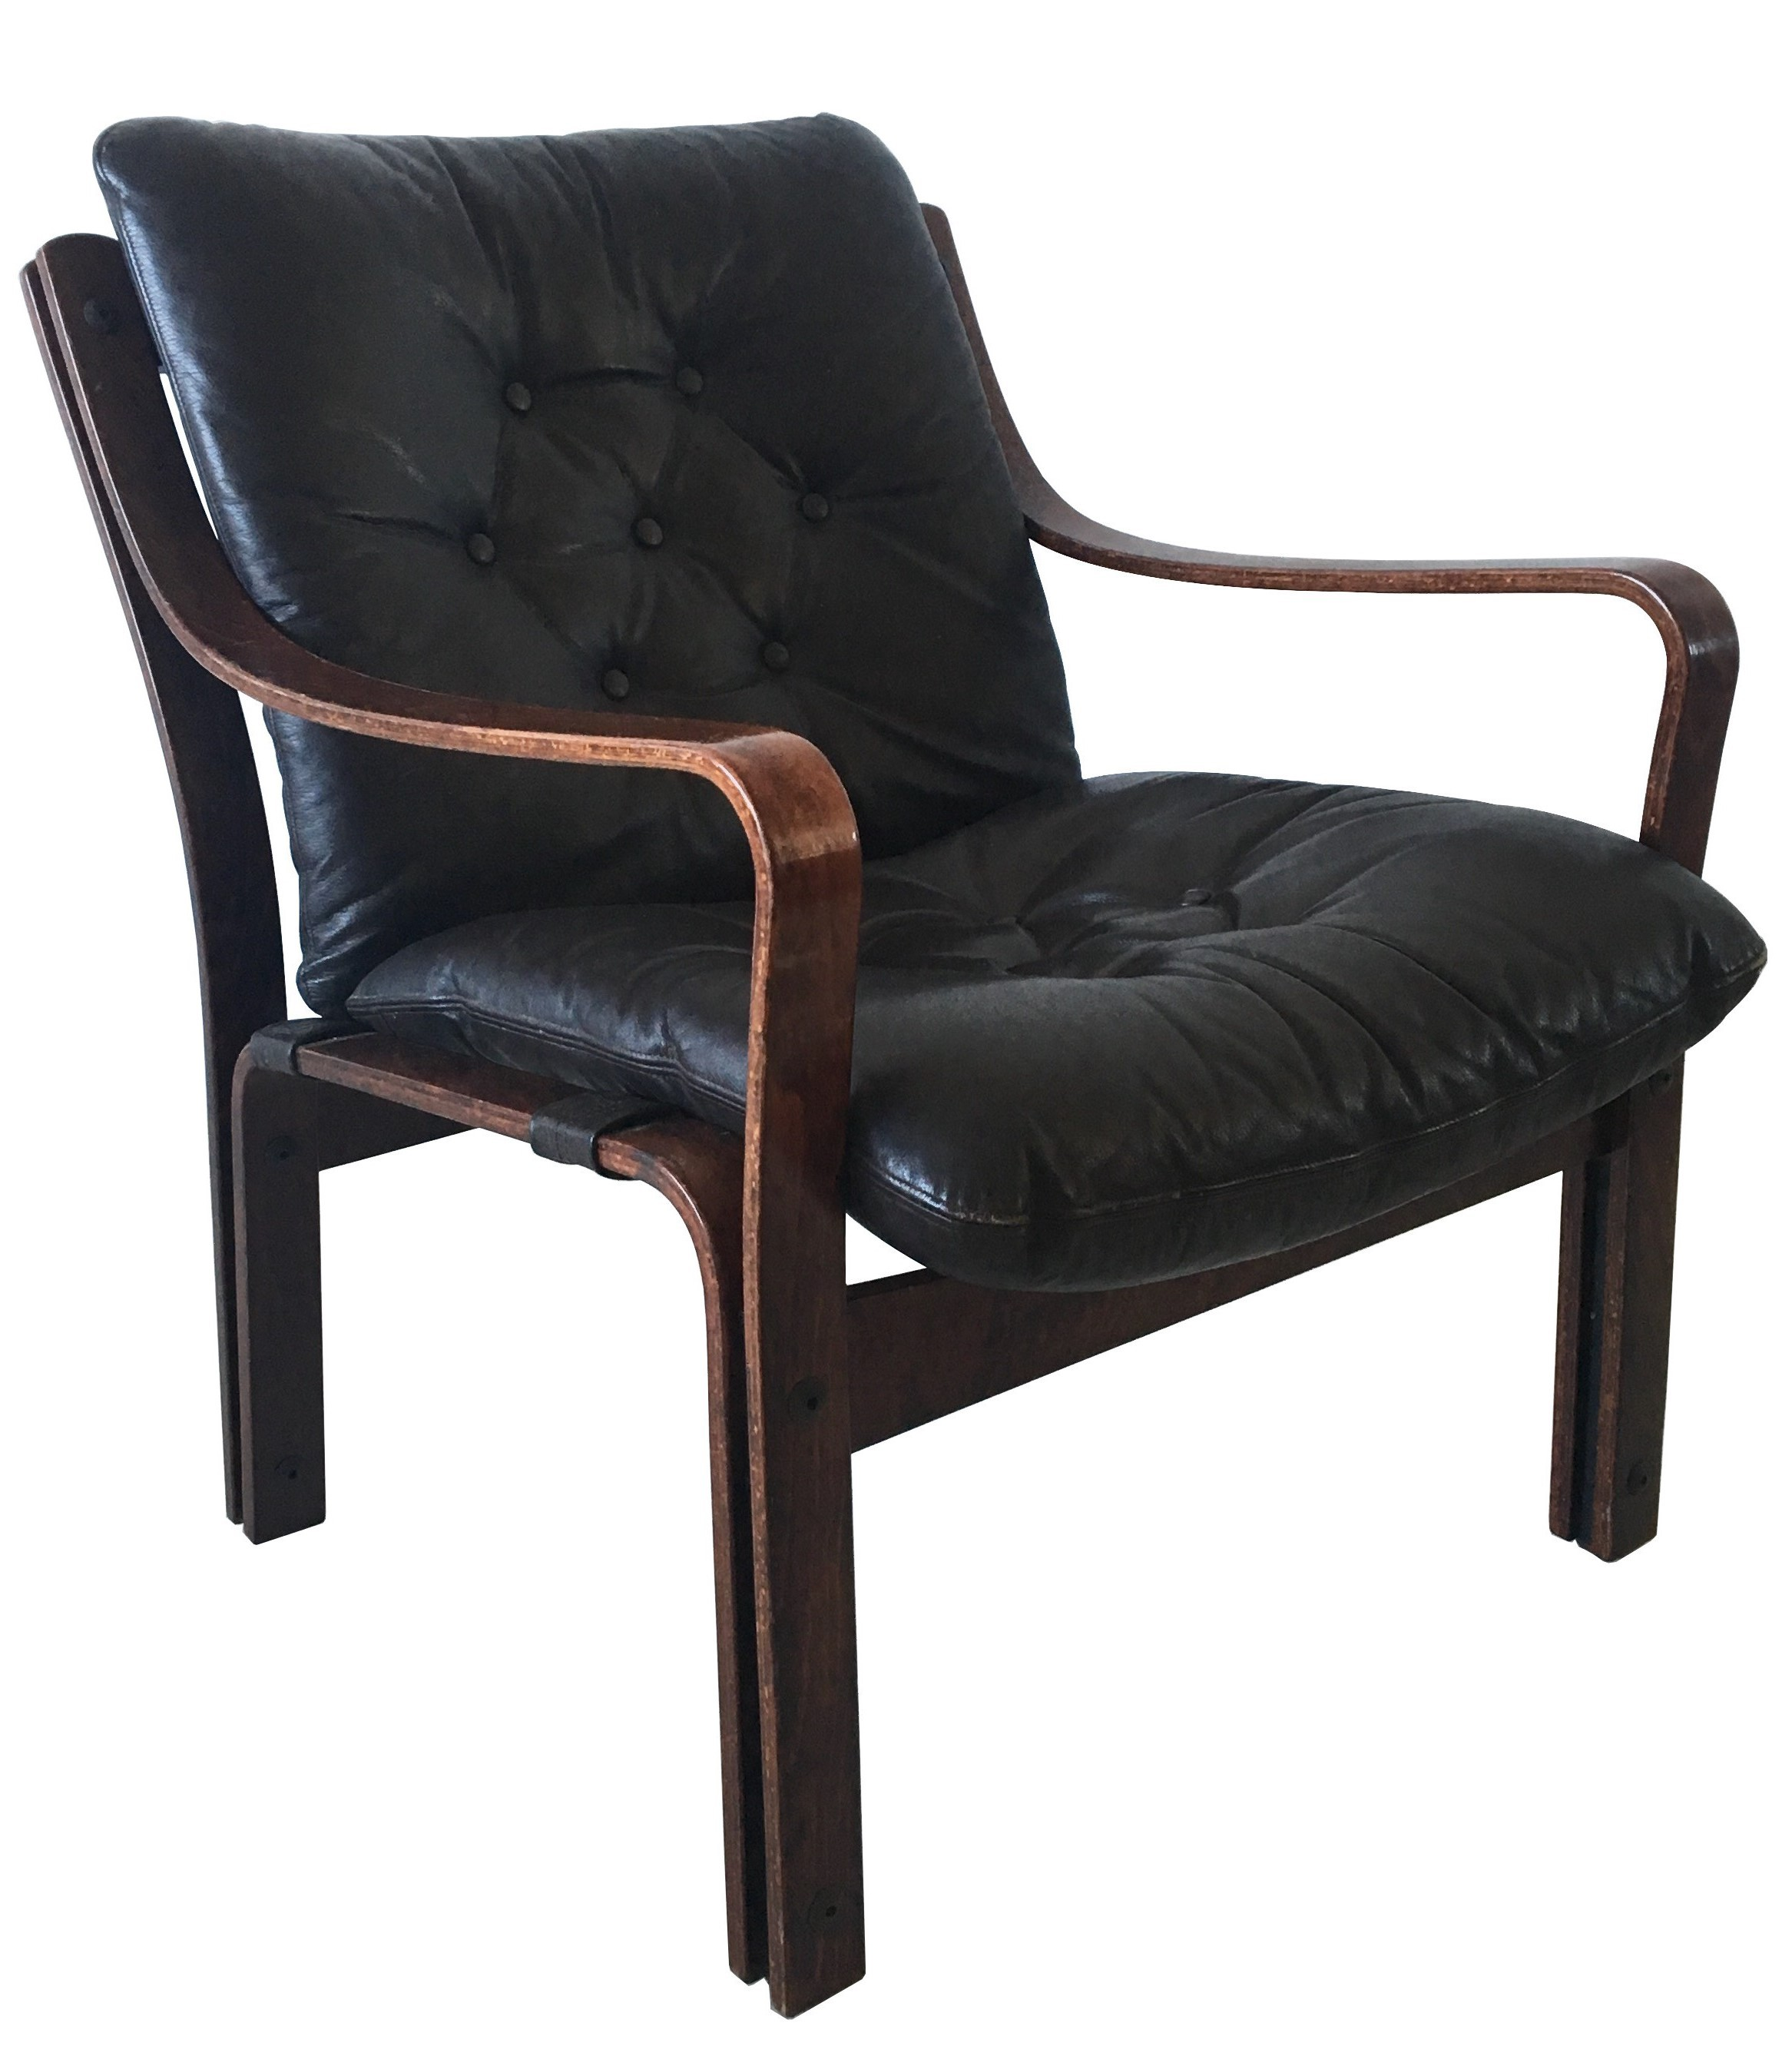 vintageleather by product chair vintage lounge black en b goose leather anthracite